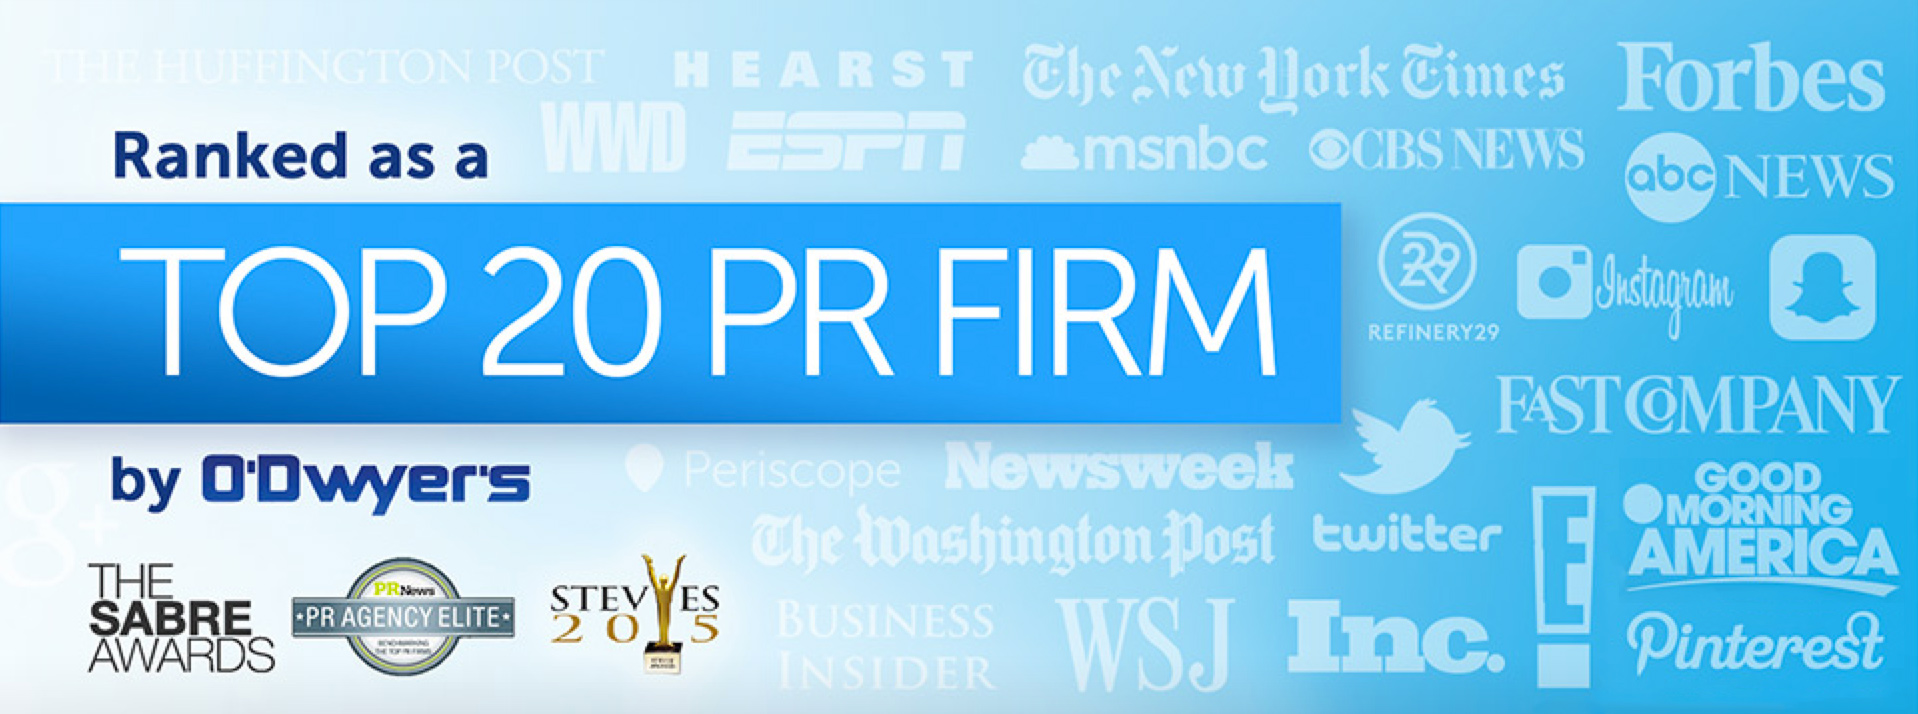 NY PR Firm 5W Public Relations